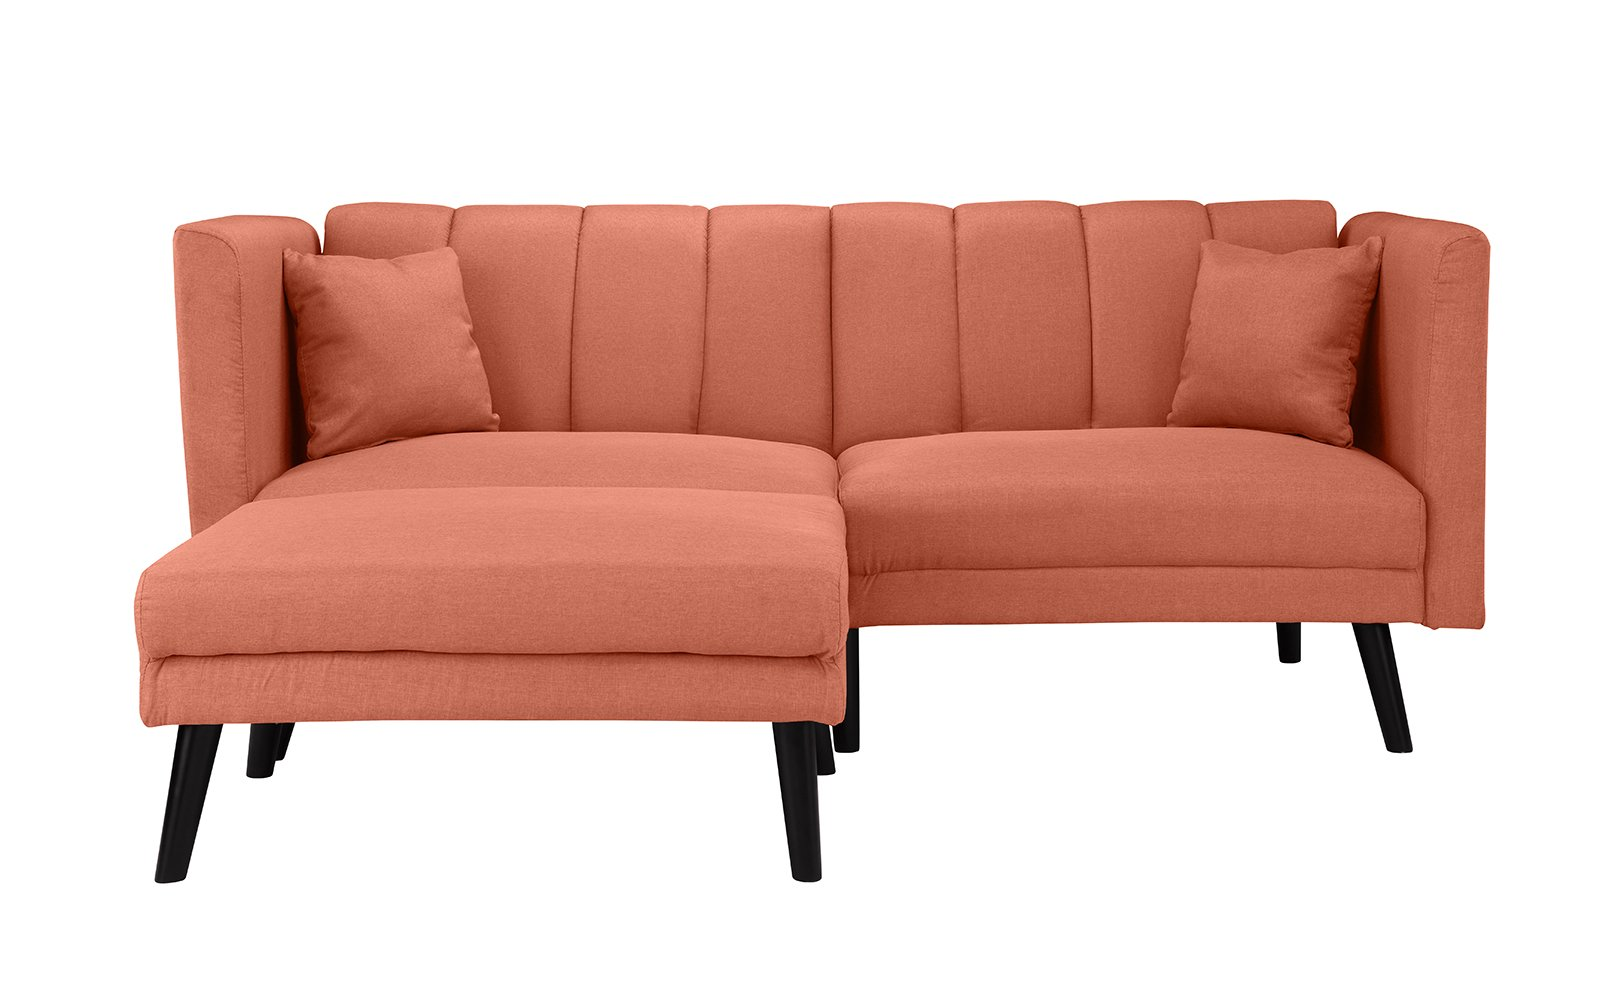 Details About Mid Century Modern Linen Fabric Futon Sofa Bed Living Room Sleeper In Orange